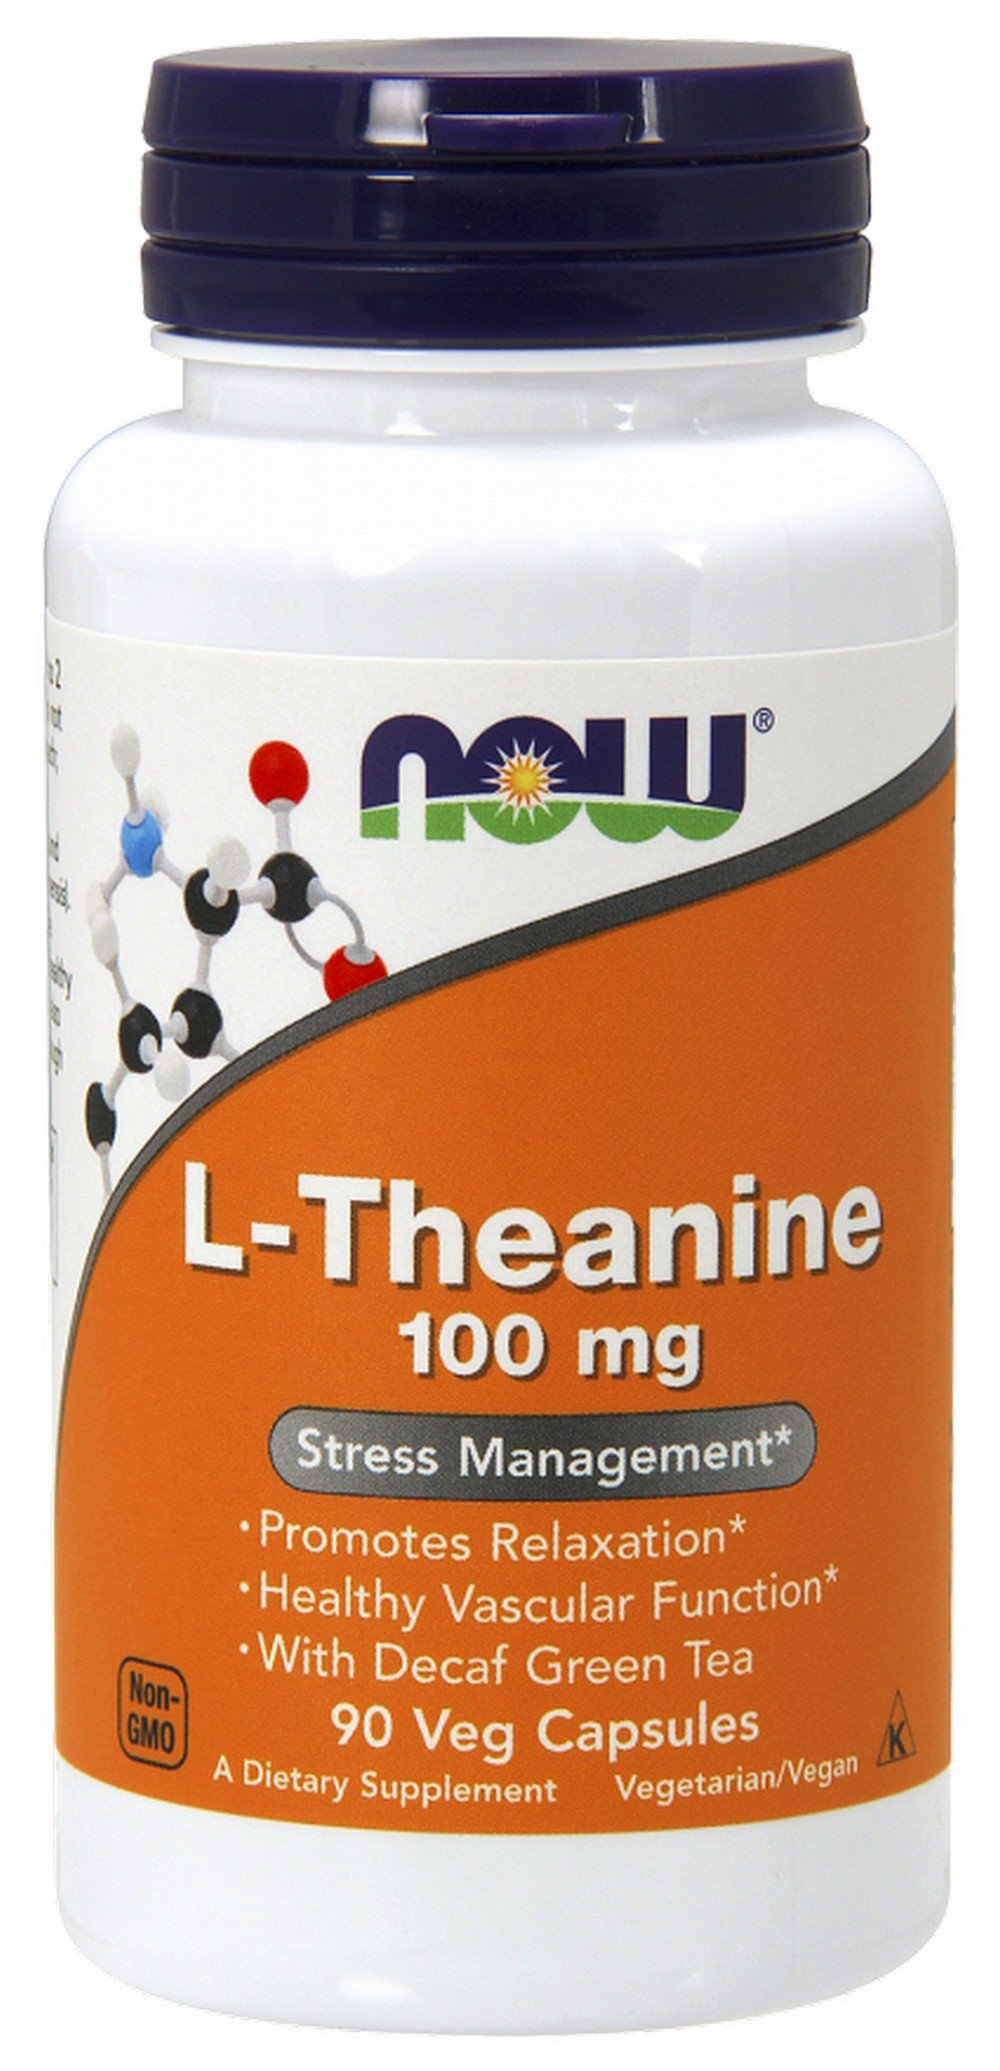 NOW L-Theanine, 100 mg, 90 Veg Capsules